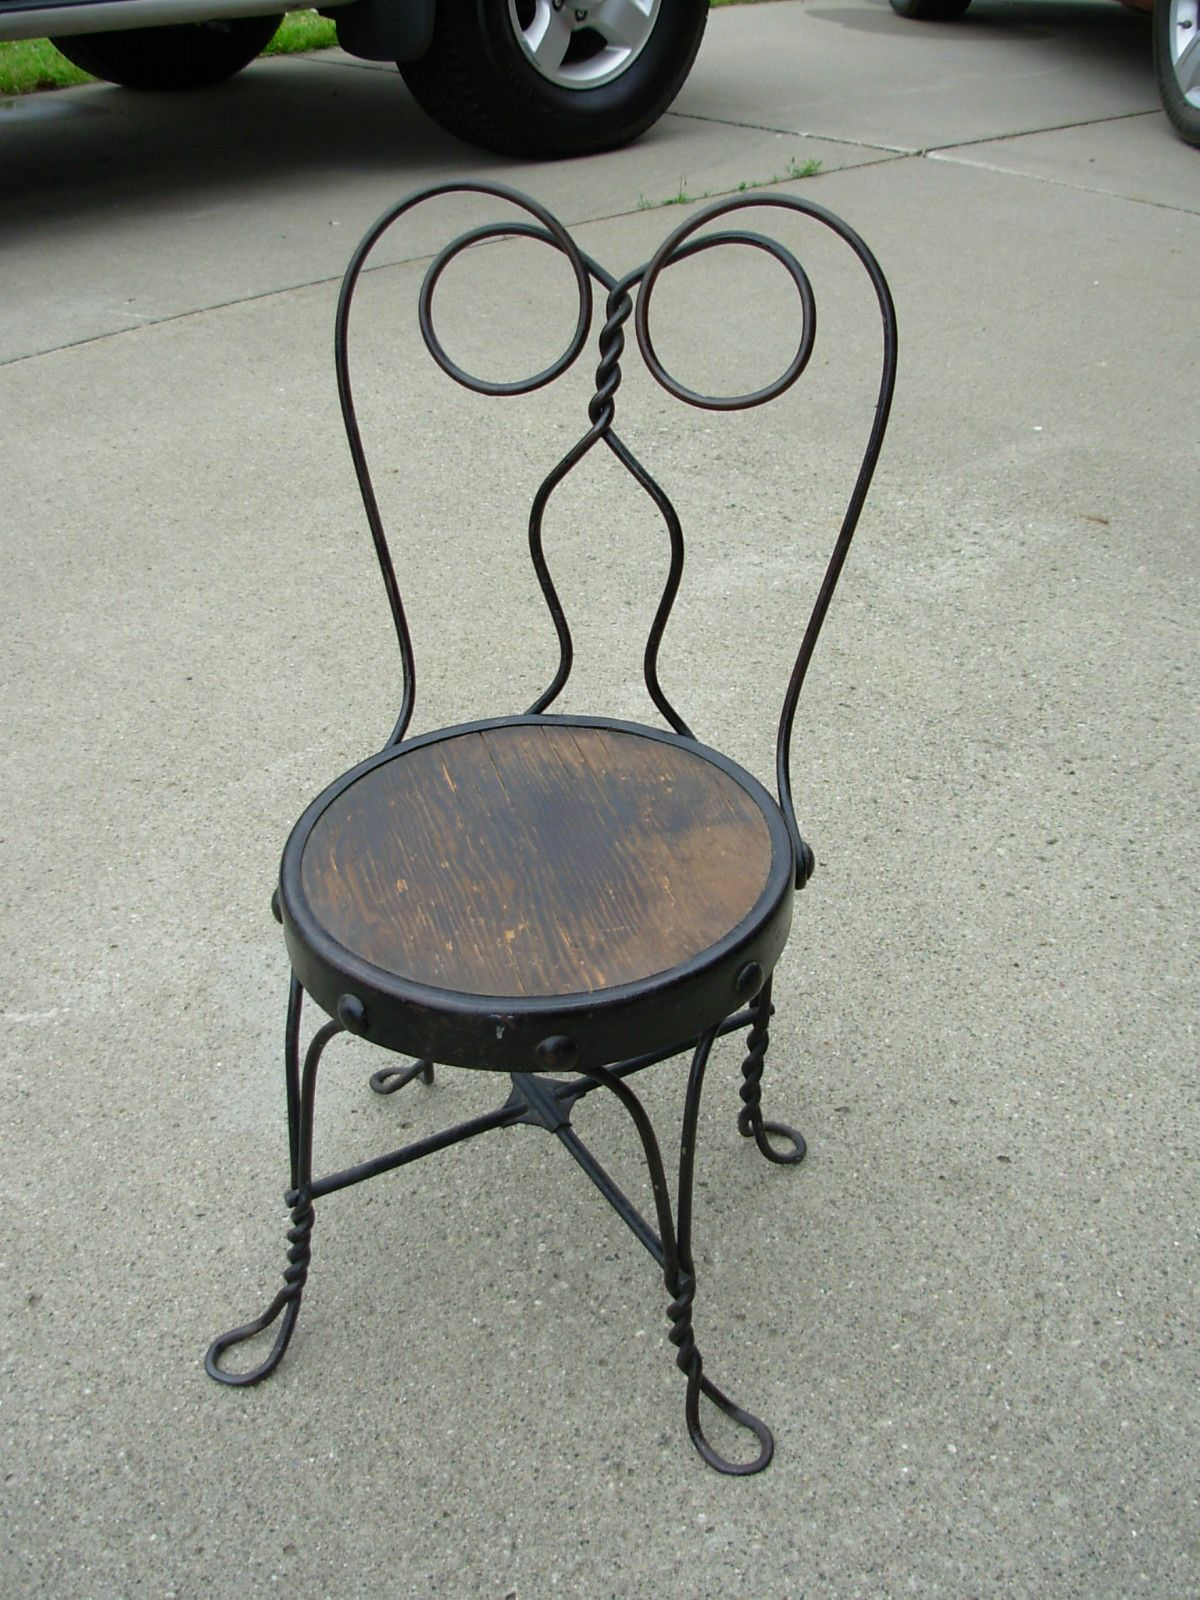 Ice Cream Table And Chairs Pompanette Helm Childs Parlor Chair Vintage Wrought Iron